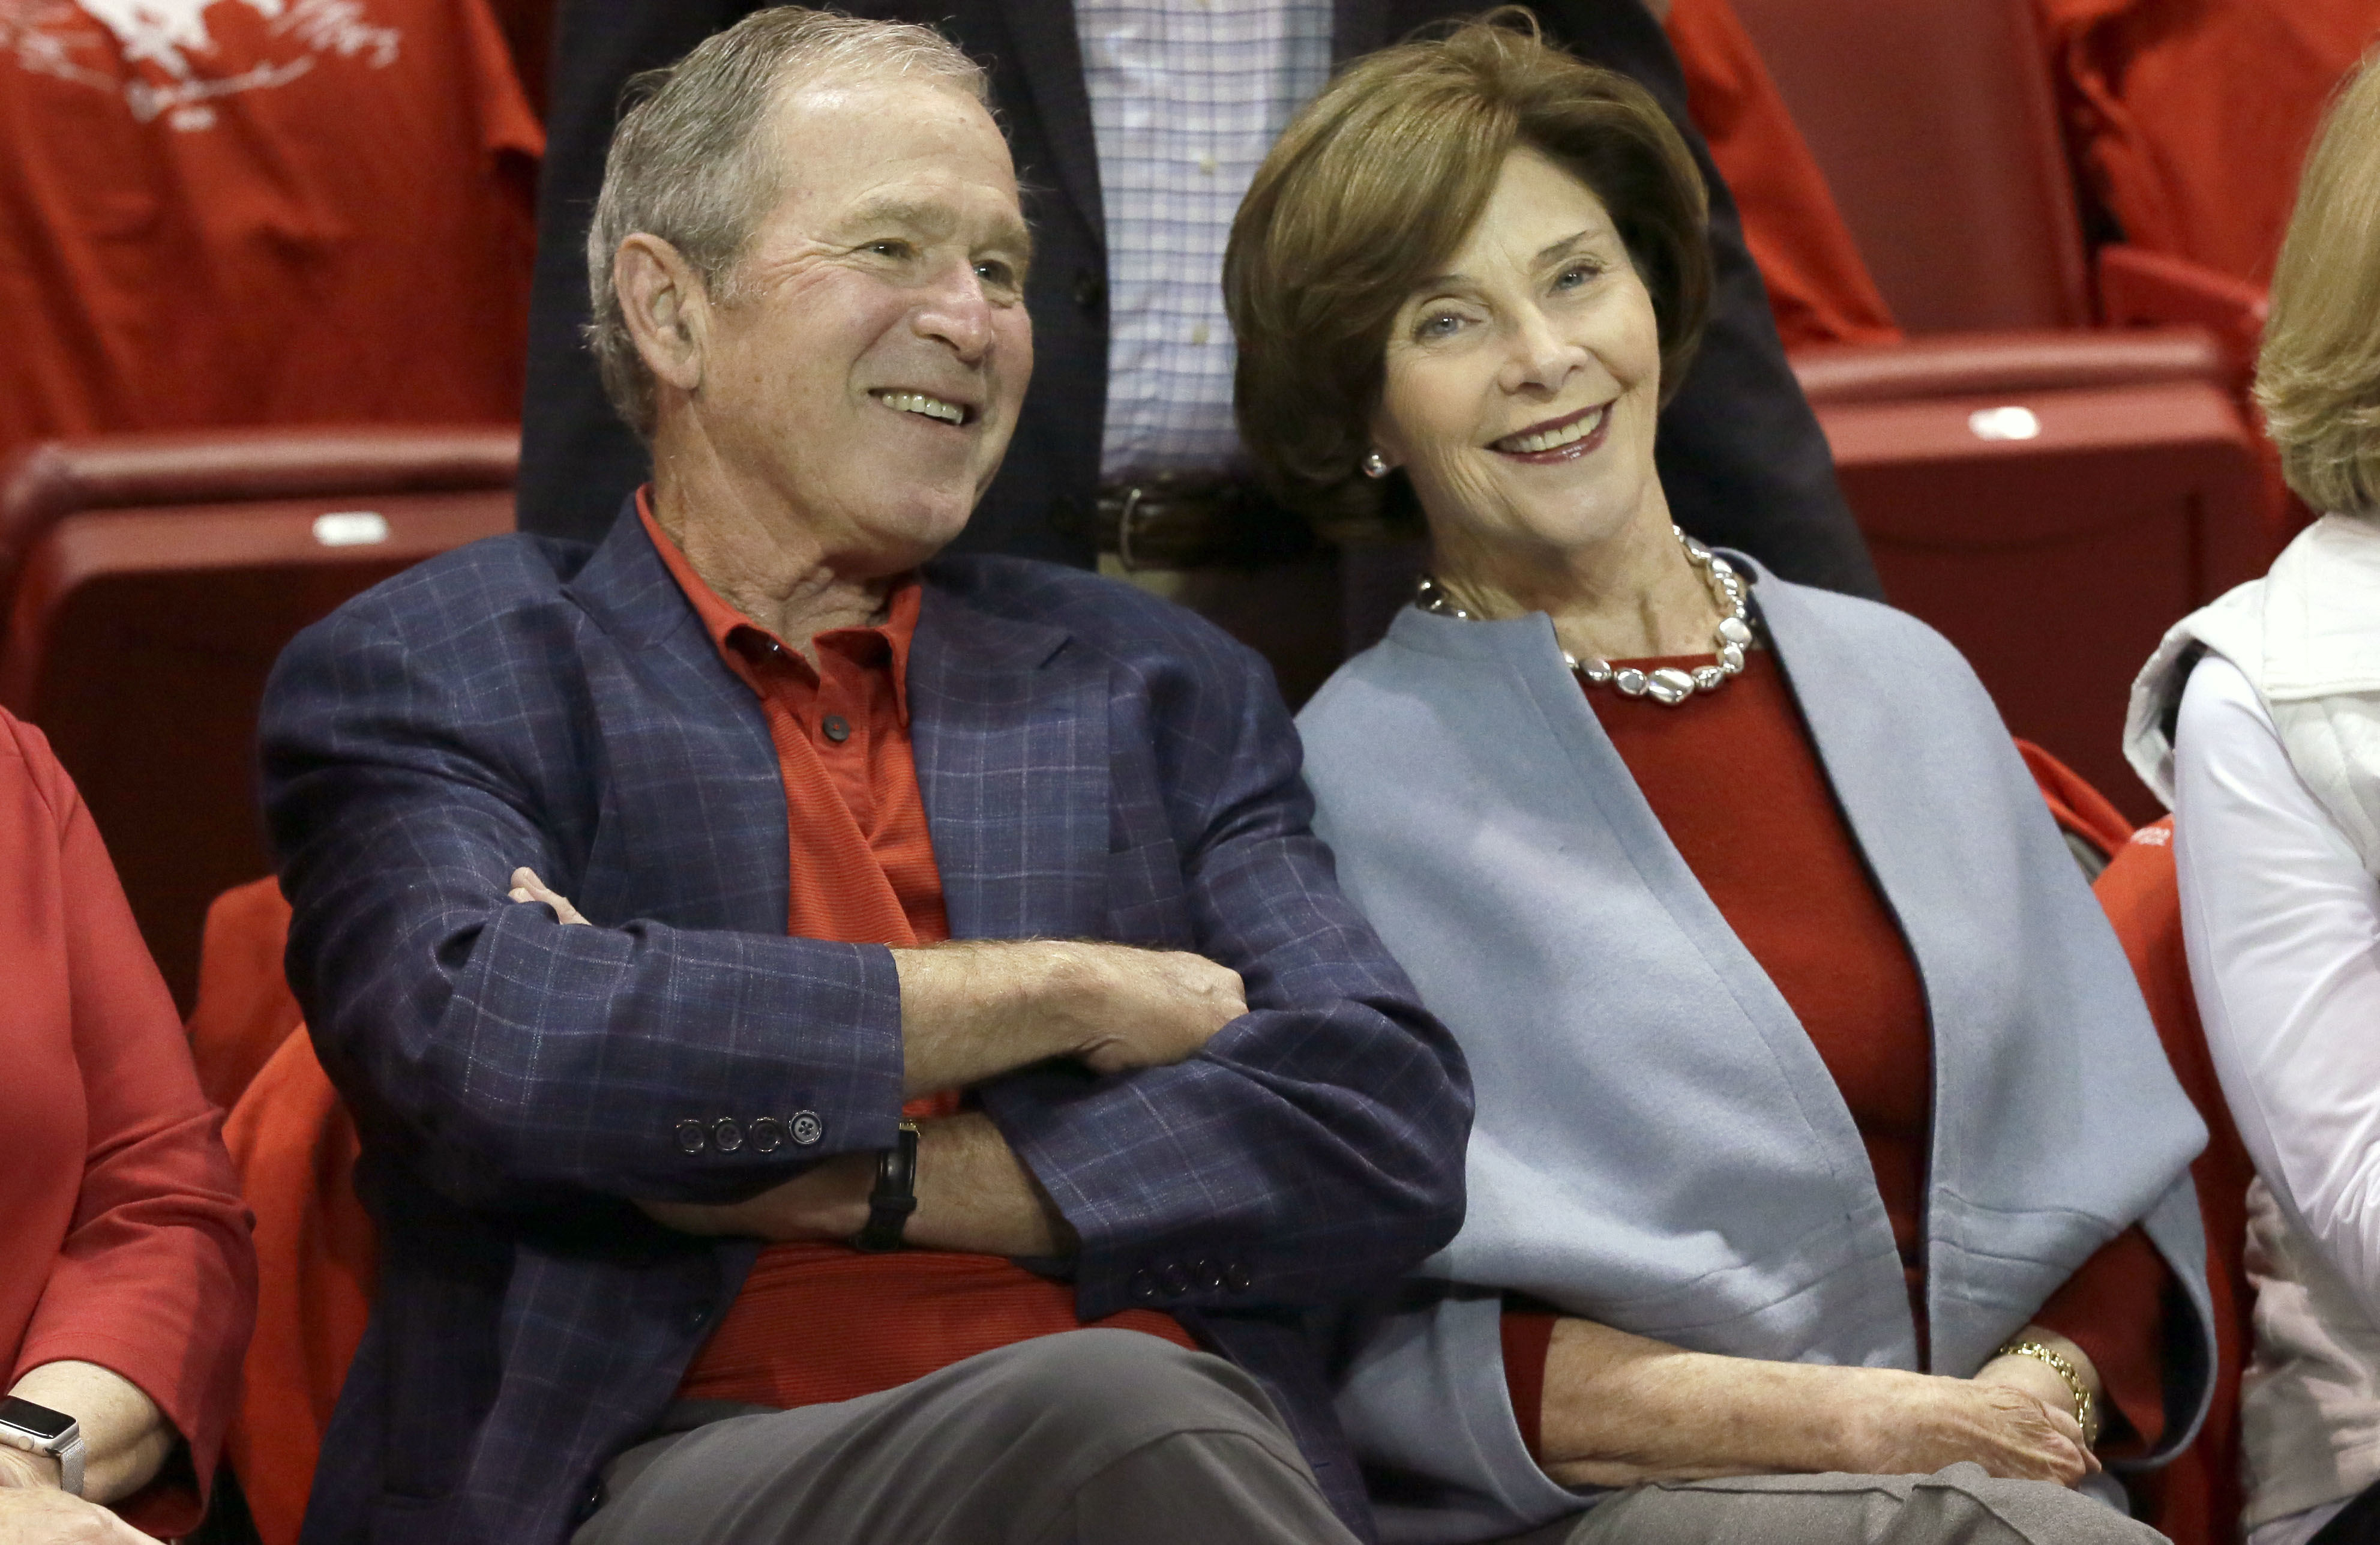 <div class='meta'><div class='origin-logo' data-origin='none'></div><span class='caption-text' data-credit='AP Photo/LM Otero'>Former President George W. Bush, left, sits with his wife Laura Bush before an NCAA college basketball game between SMU and Memphis Saturday, March 4, 2017, in Dallas.</span></div>